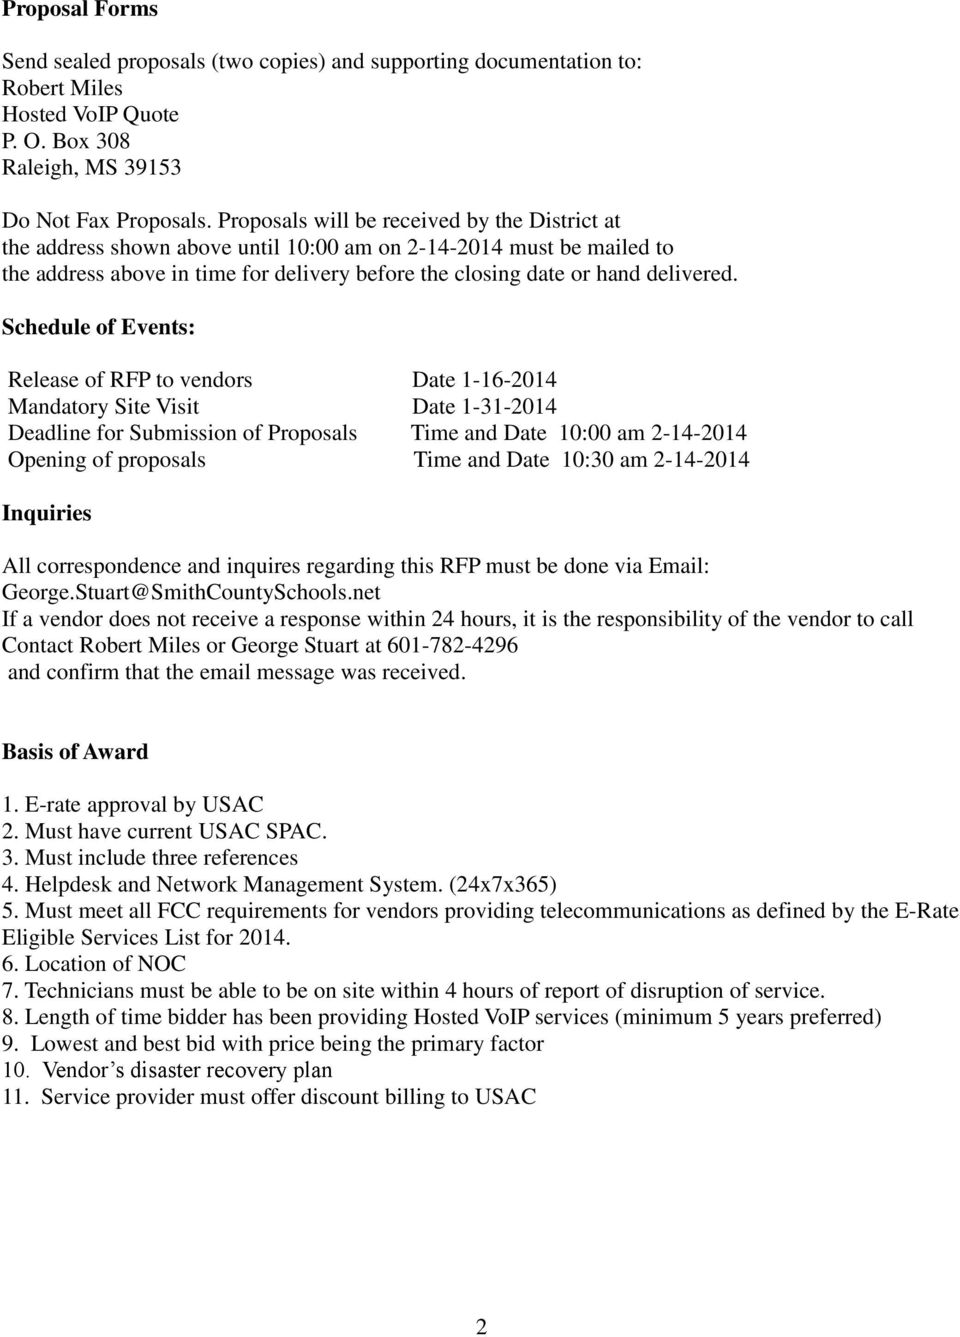 Schedule of Events: Release of RFP to vendors Date 1-16-2014 Mandatory Site Visit Date 1-31-2014 Deadline for Submission of Proposals Time and Date 10:00 am 2-14-2014 Opening of proposals Time and